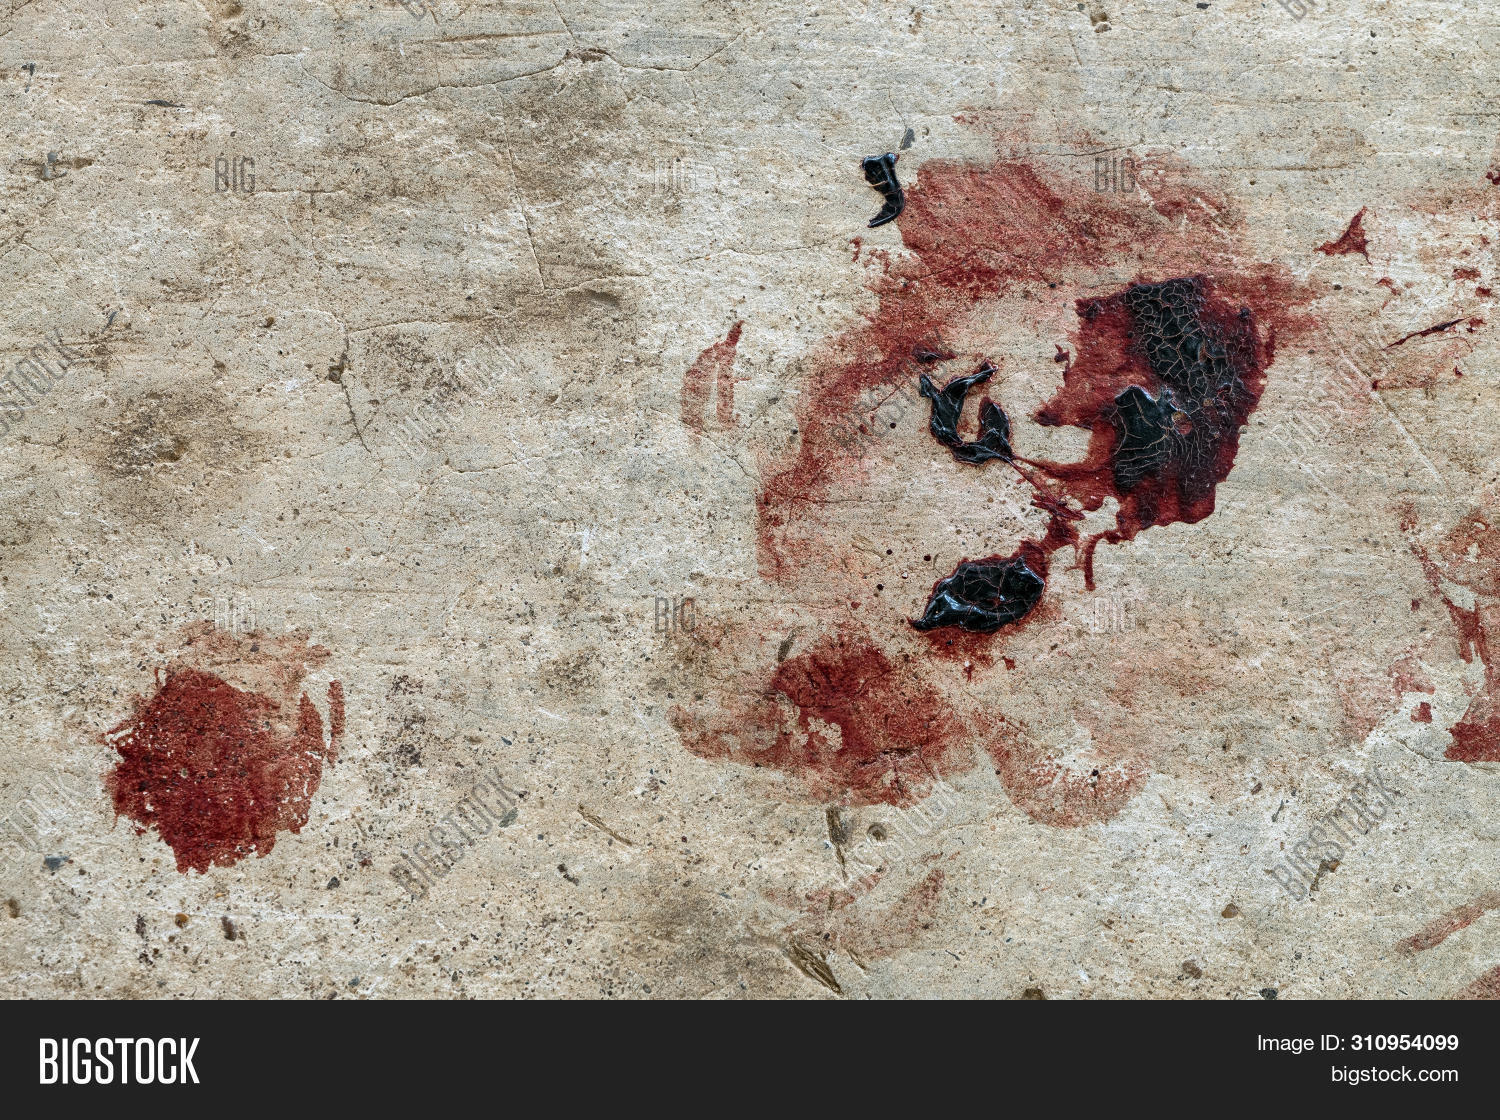 Bloodstain On Dirty Image Photo Free Trial Bigstock Floor, ground, substance designer, tiles, wood • tags: bloodstain on dirty image photo free